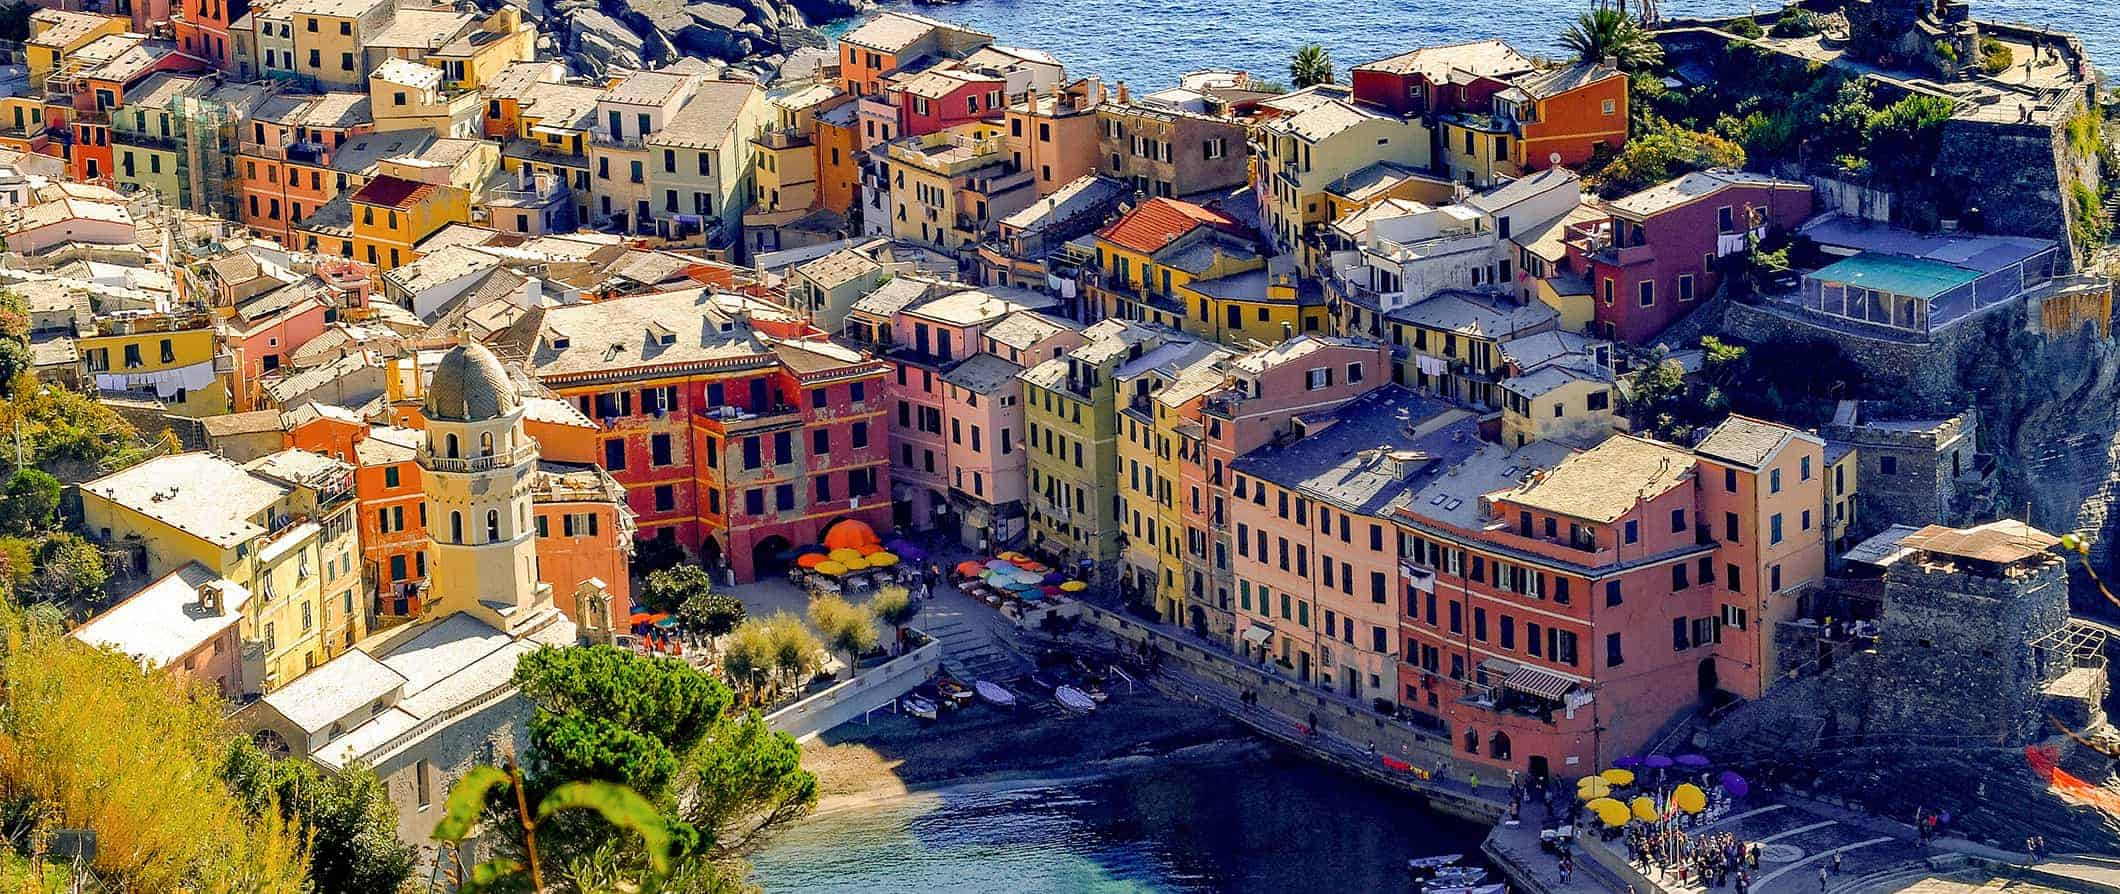 colorful buildings in the Cinque Terre